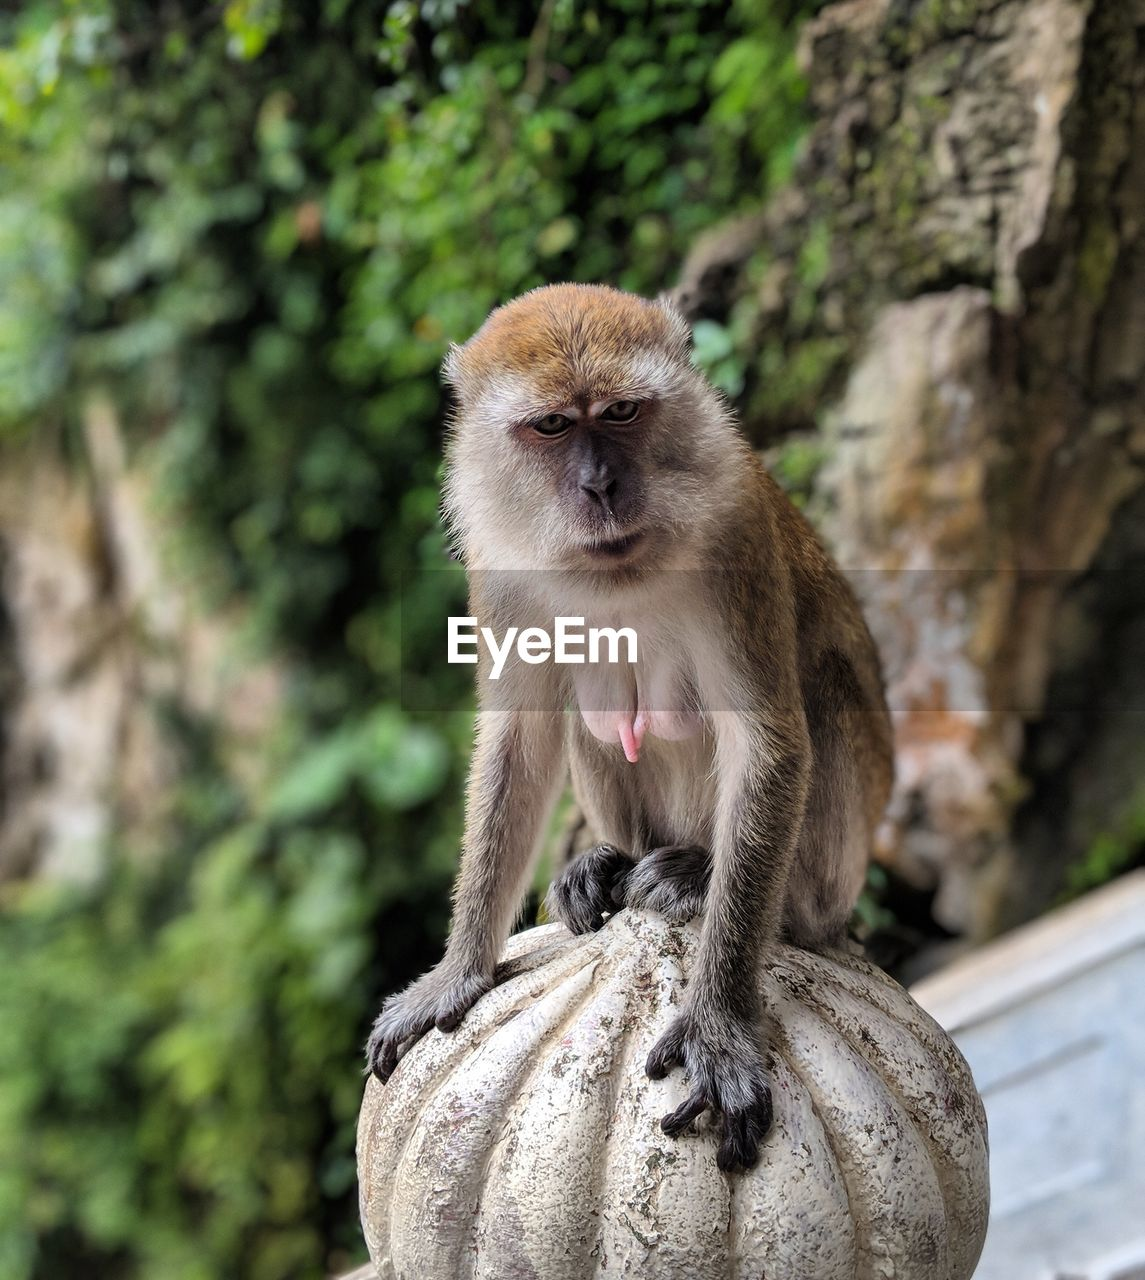 animal wildlife, animals in the wild, primate, one animal, mammal, sitting, vertebrate, focus on foreground, day, tree, no people, looking away, nature, plant, looking, outdoors, care